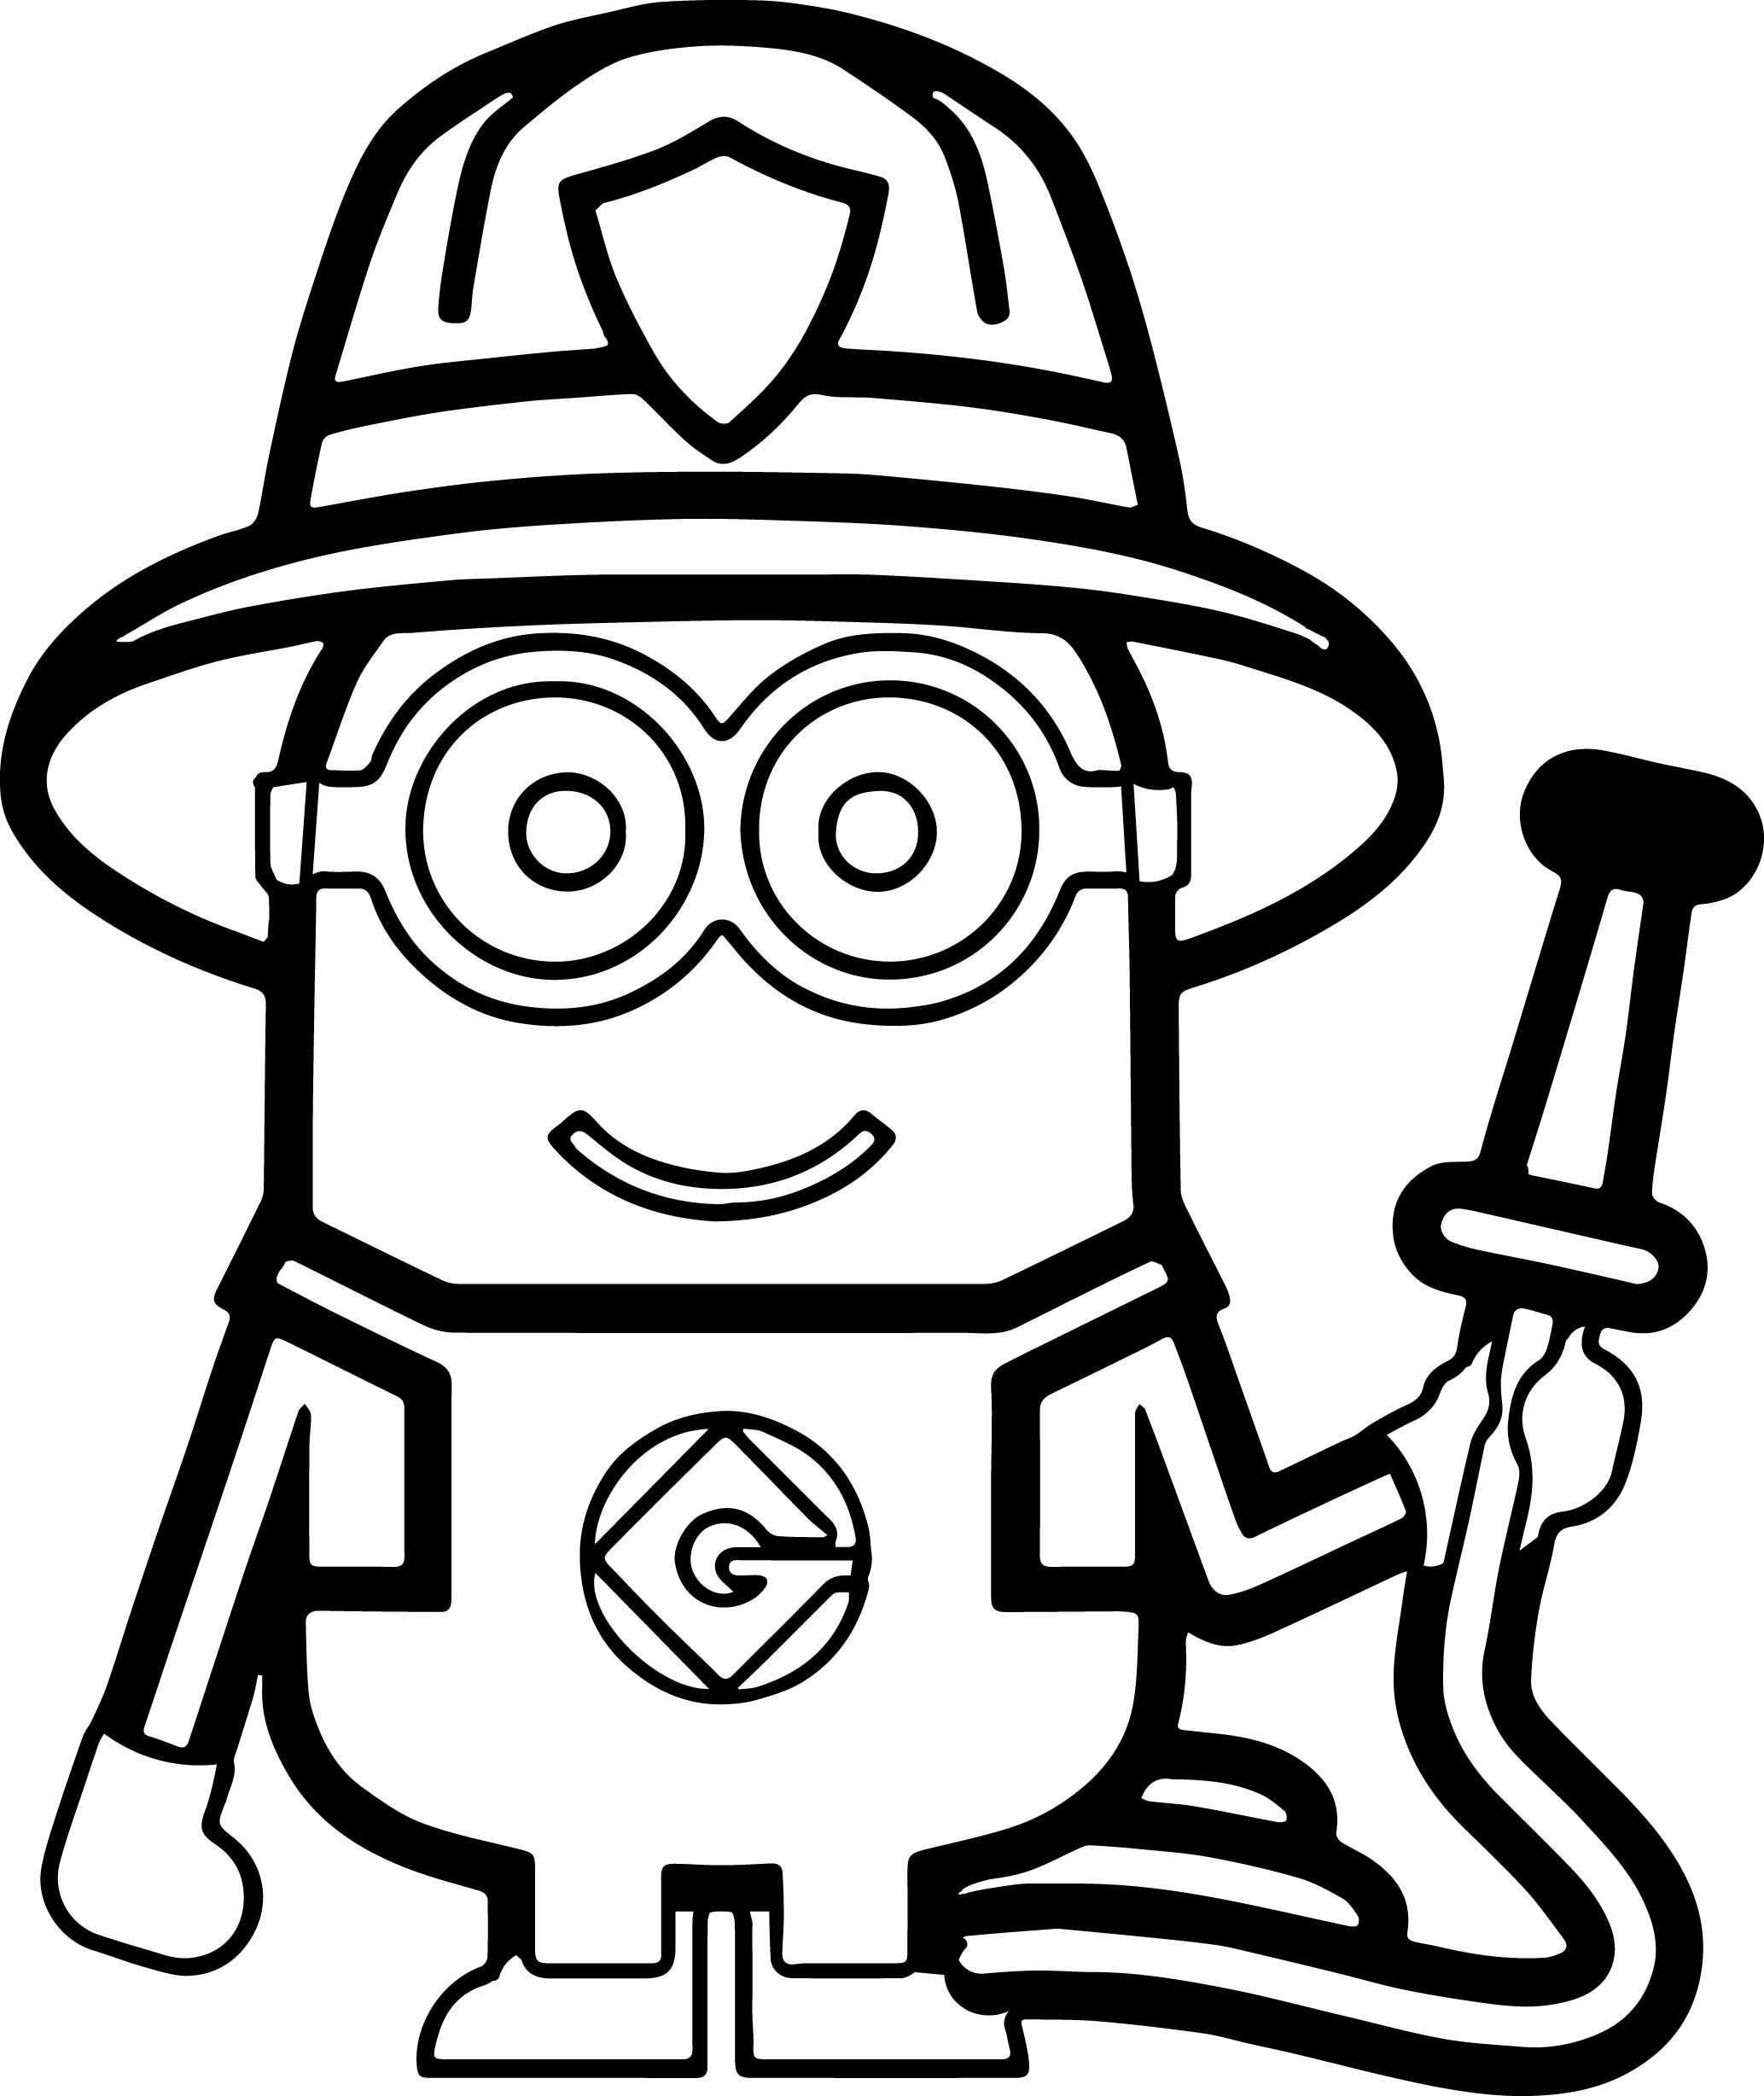 minions fireman coloring pagemore pins like this one at fosterginger pinterest - Minion Coloring Pages